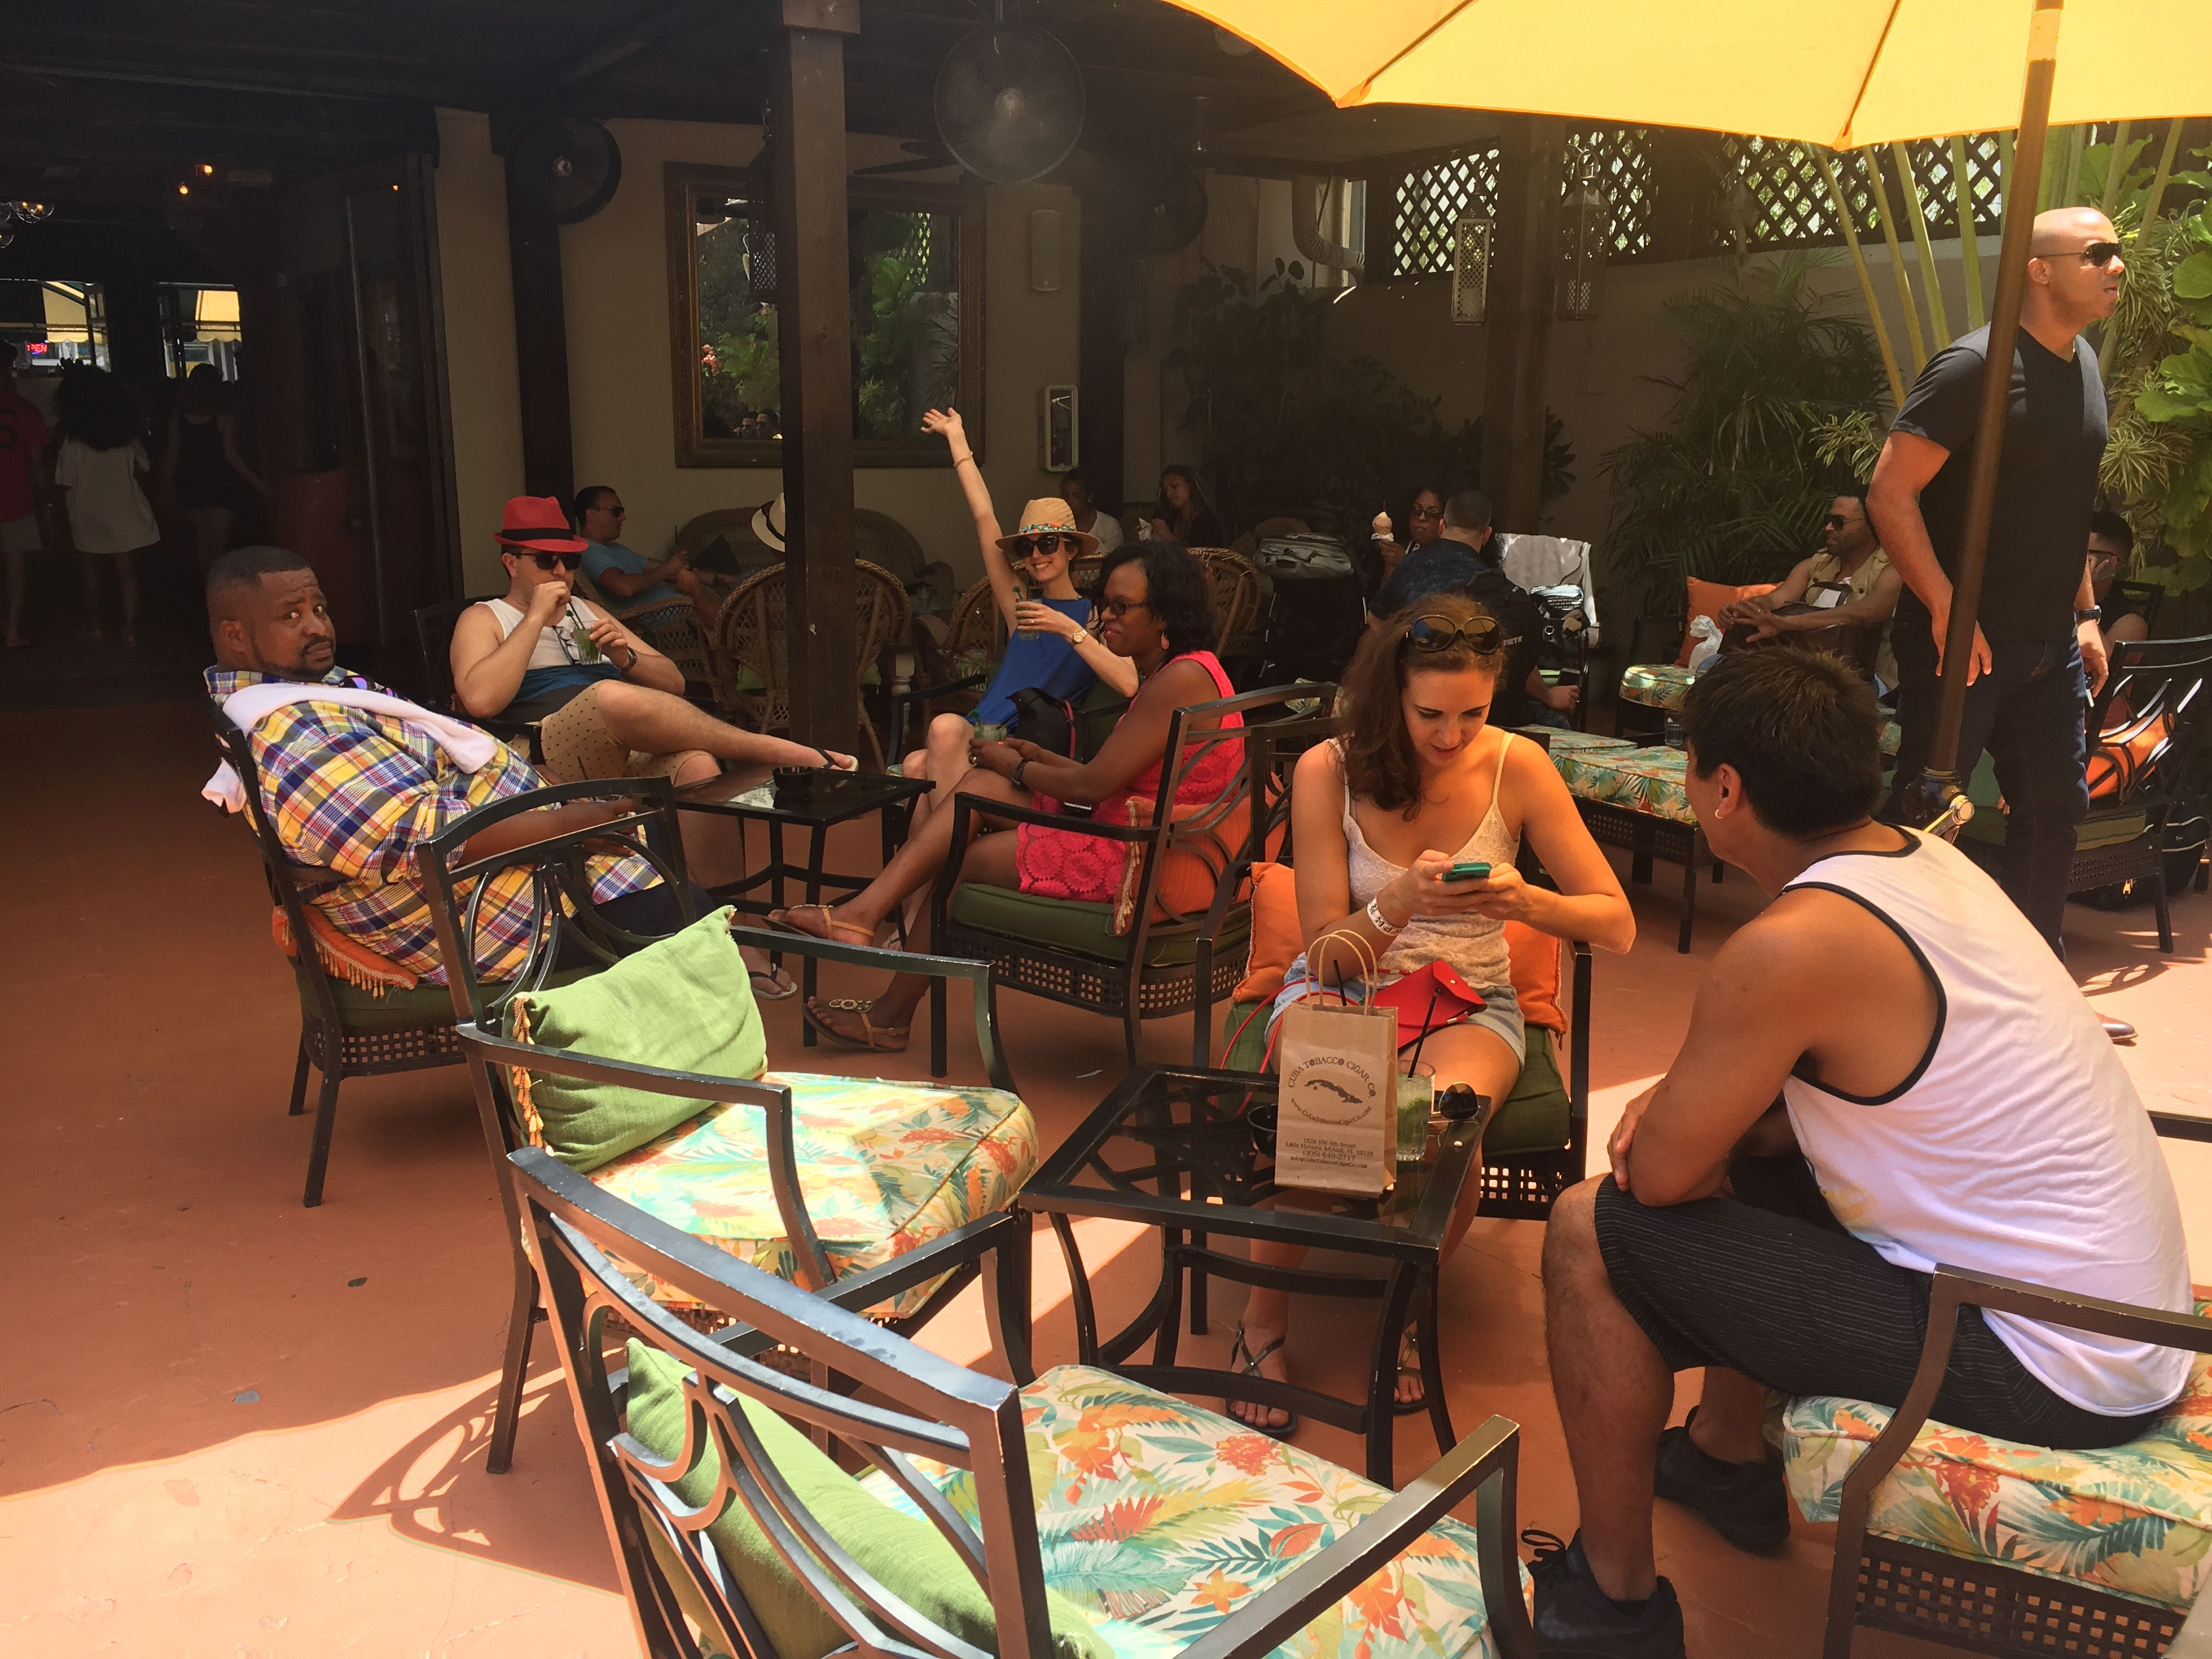 Enjoying outdoors with mojito at Ball and Chain on 5/29/2017 Little Havana public lunch tour